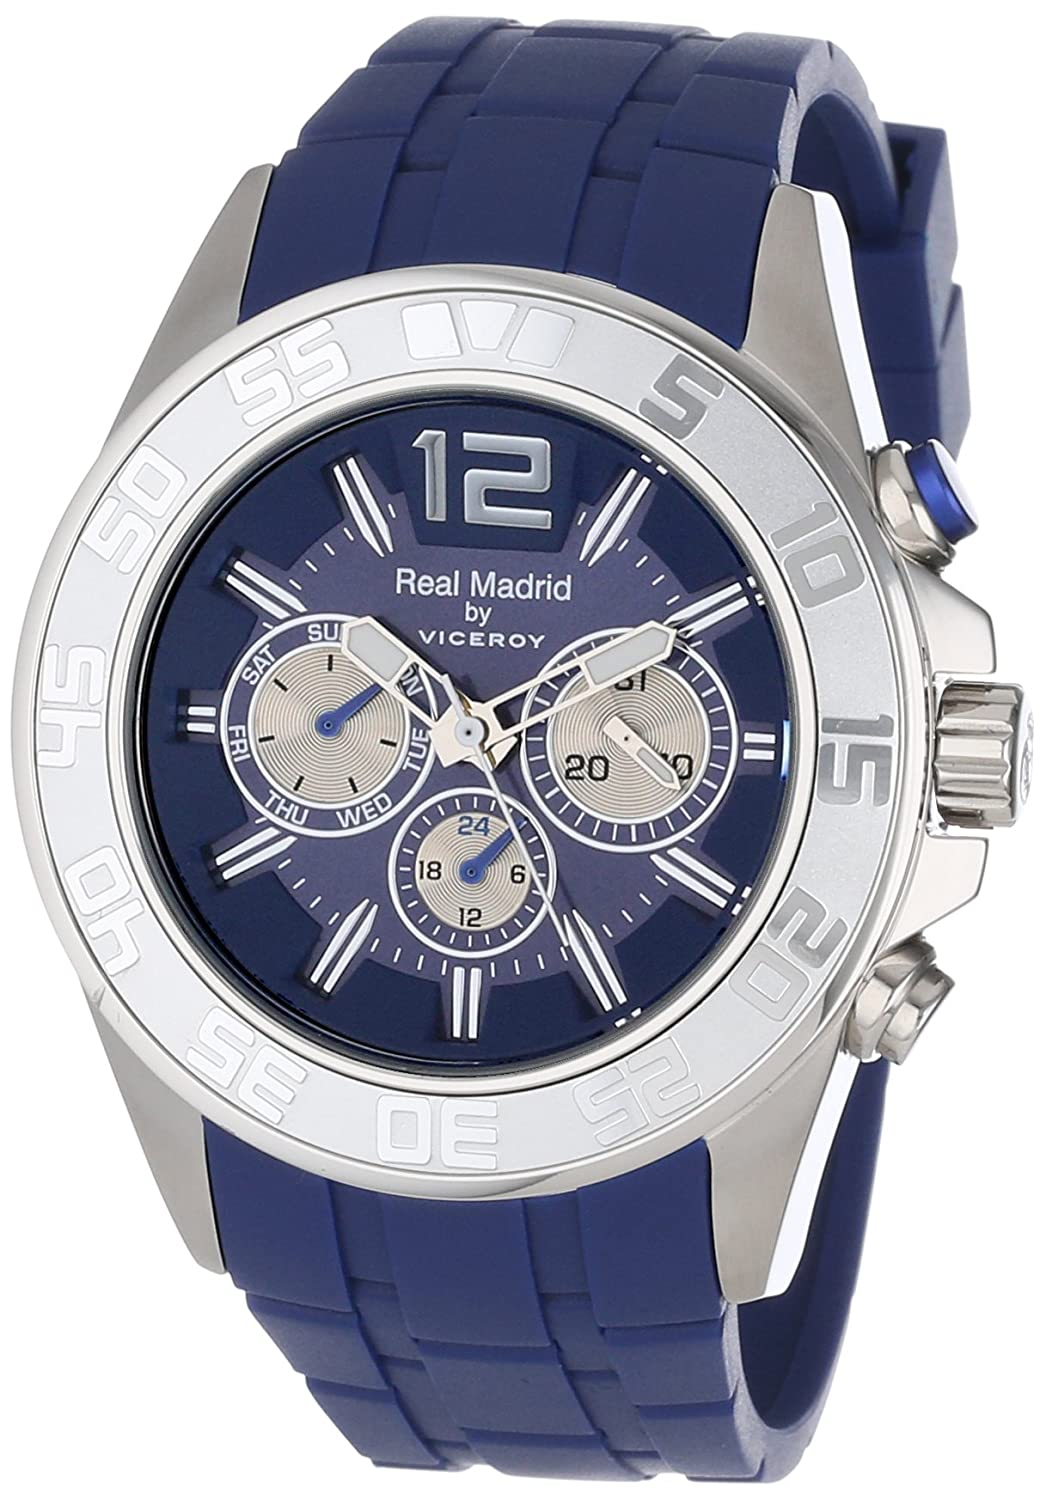 Amazon.com: Viceroy 432859-35 Real Madrid Reloj de pulsera ...